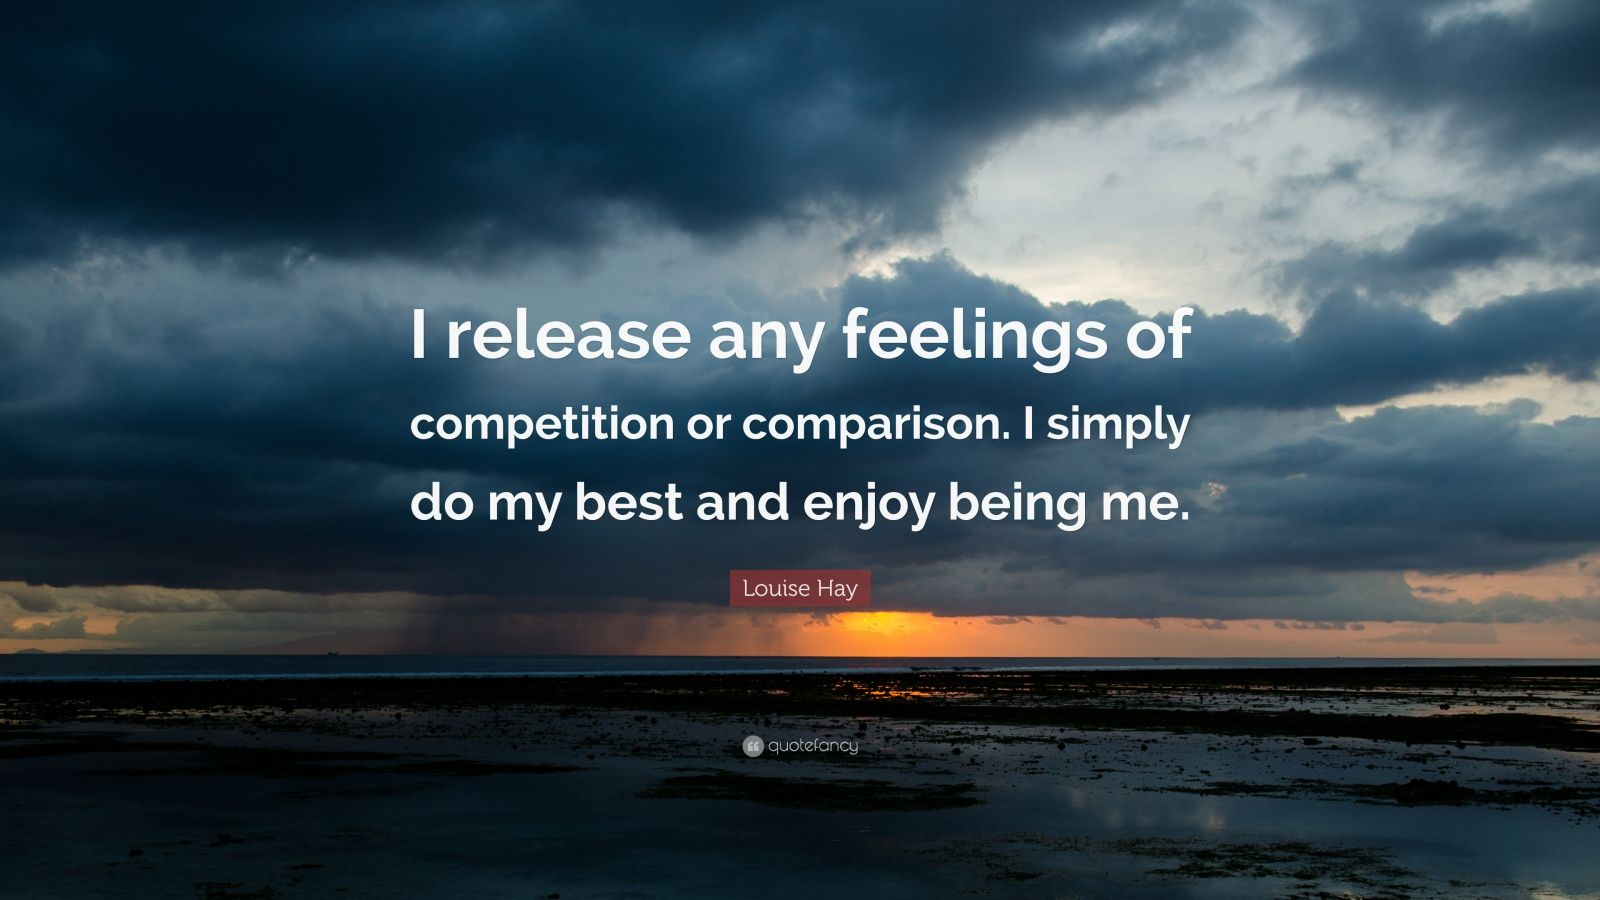 """Louise Hay Quote: """"I release any feelings of competition or comparison. I simply do my best and enjoy being me."""""""